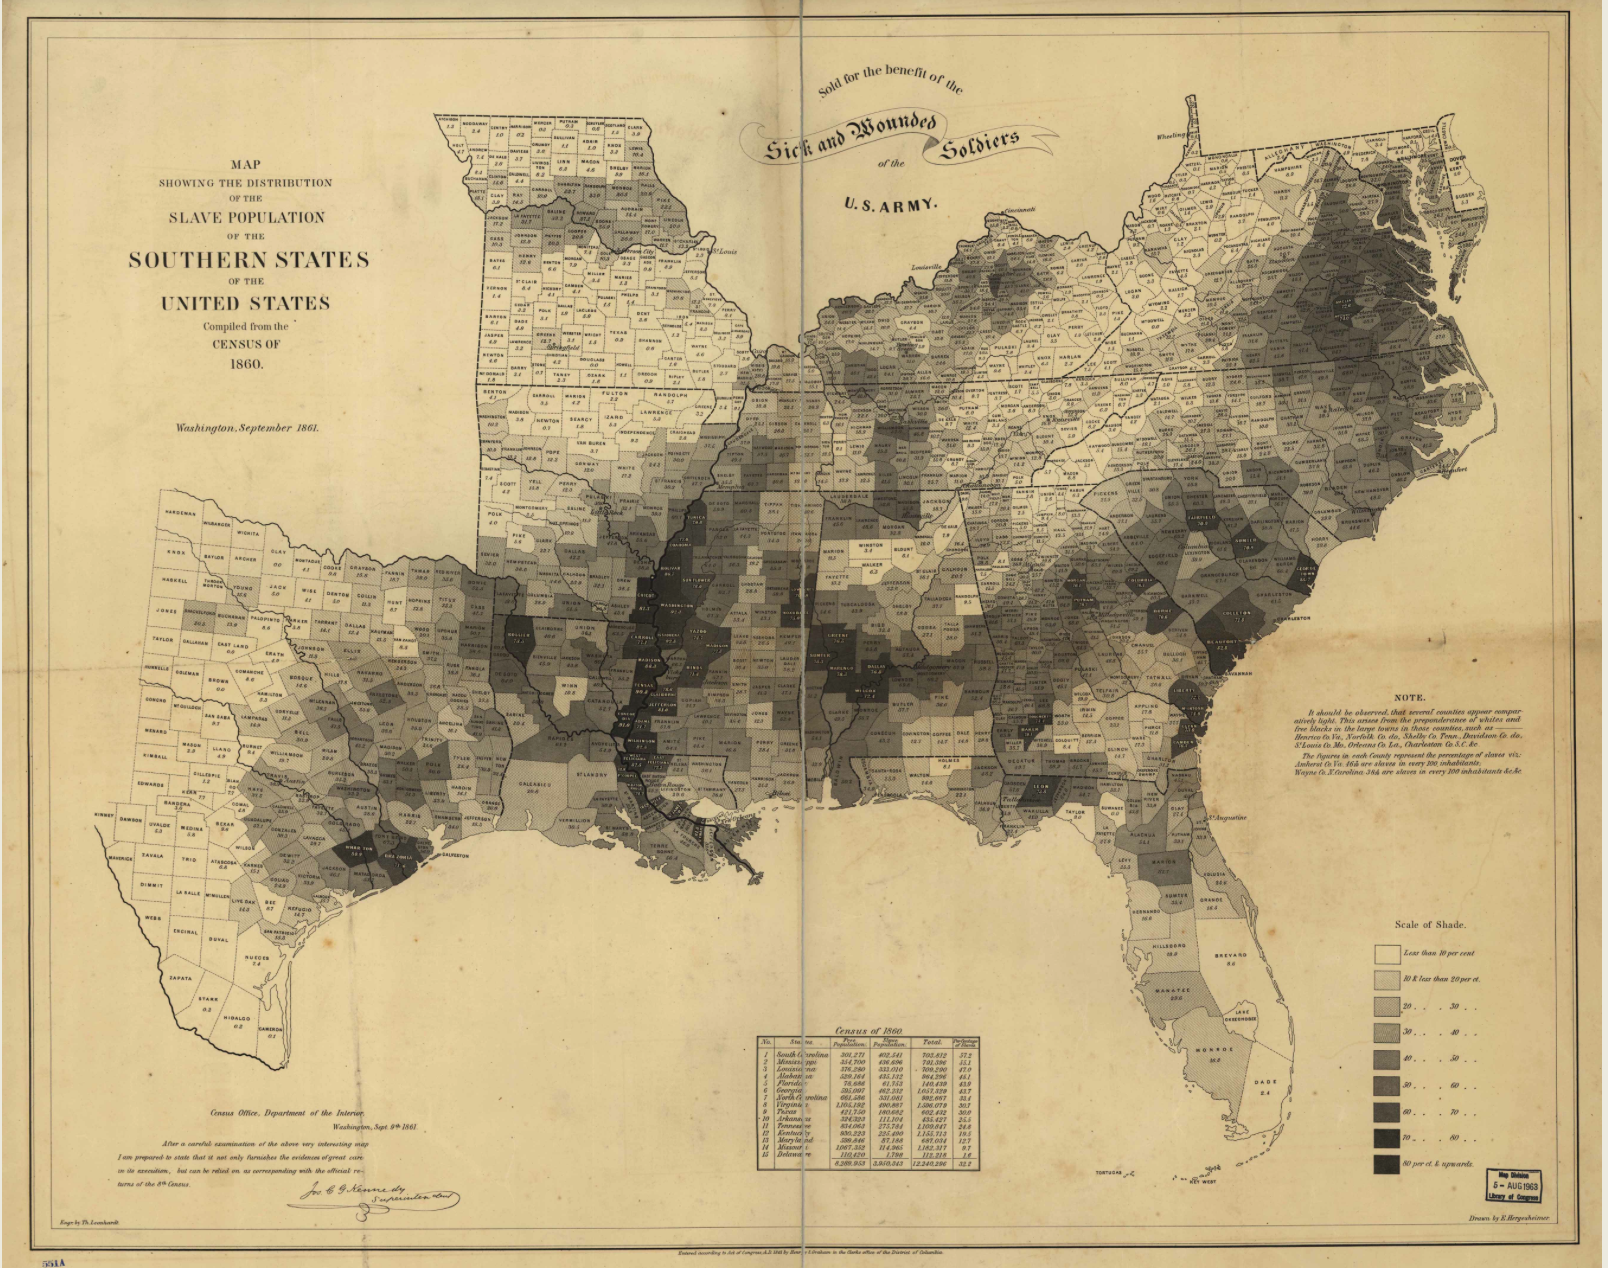 Mapping Secession Of Southern States Musings On Maps - Map of united states during reconstruction